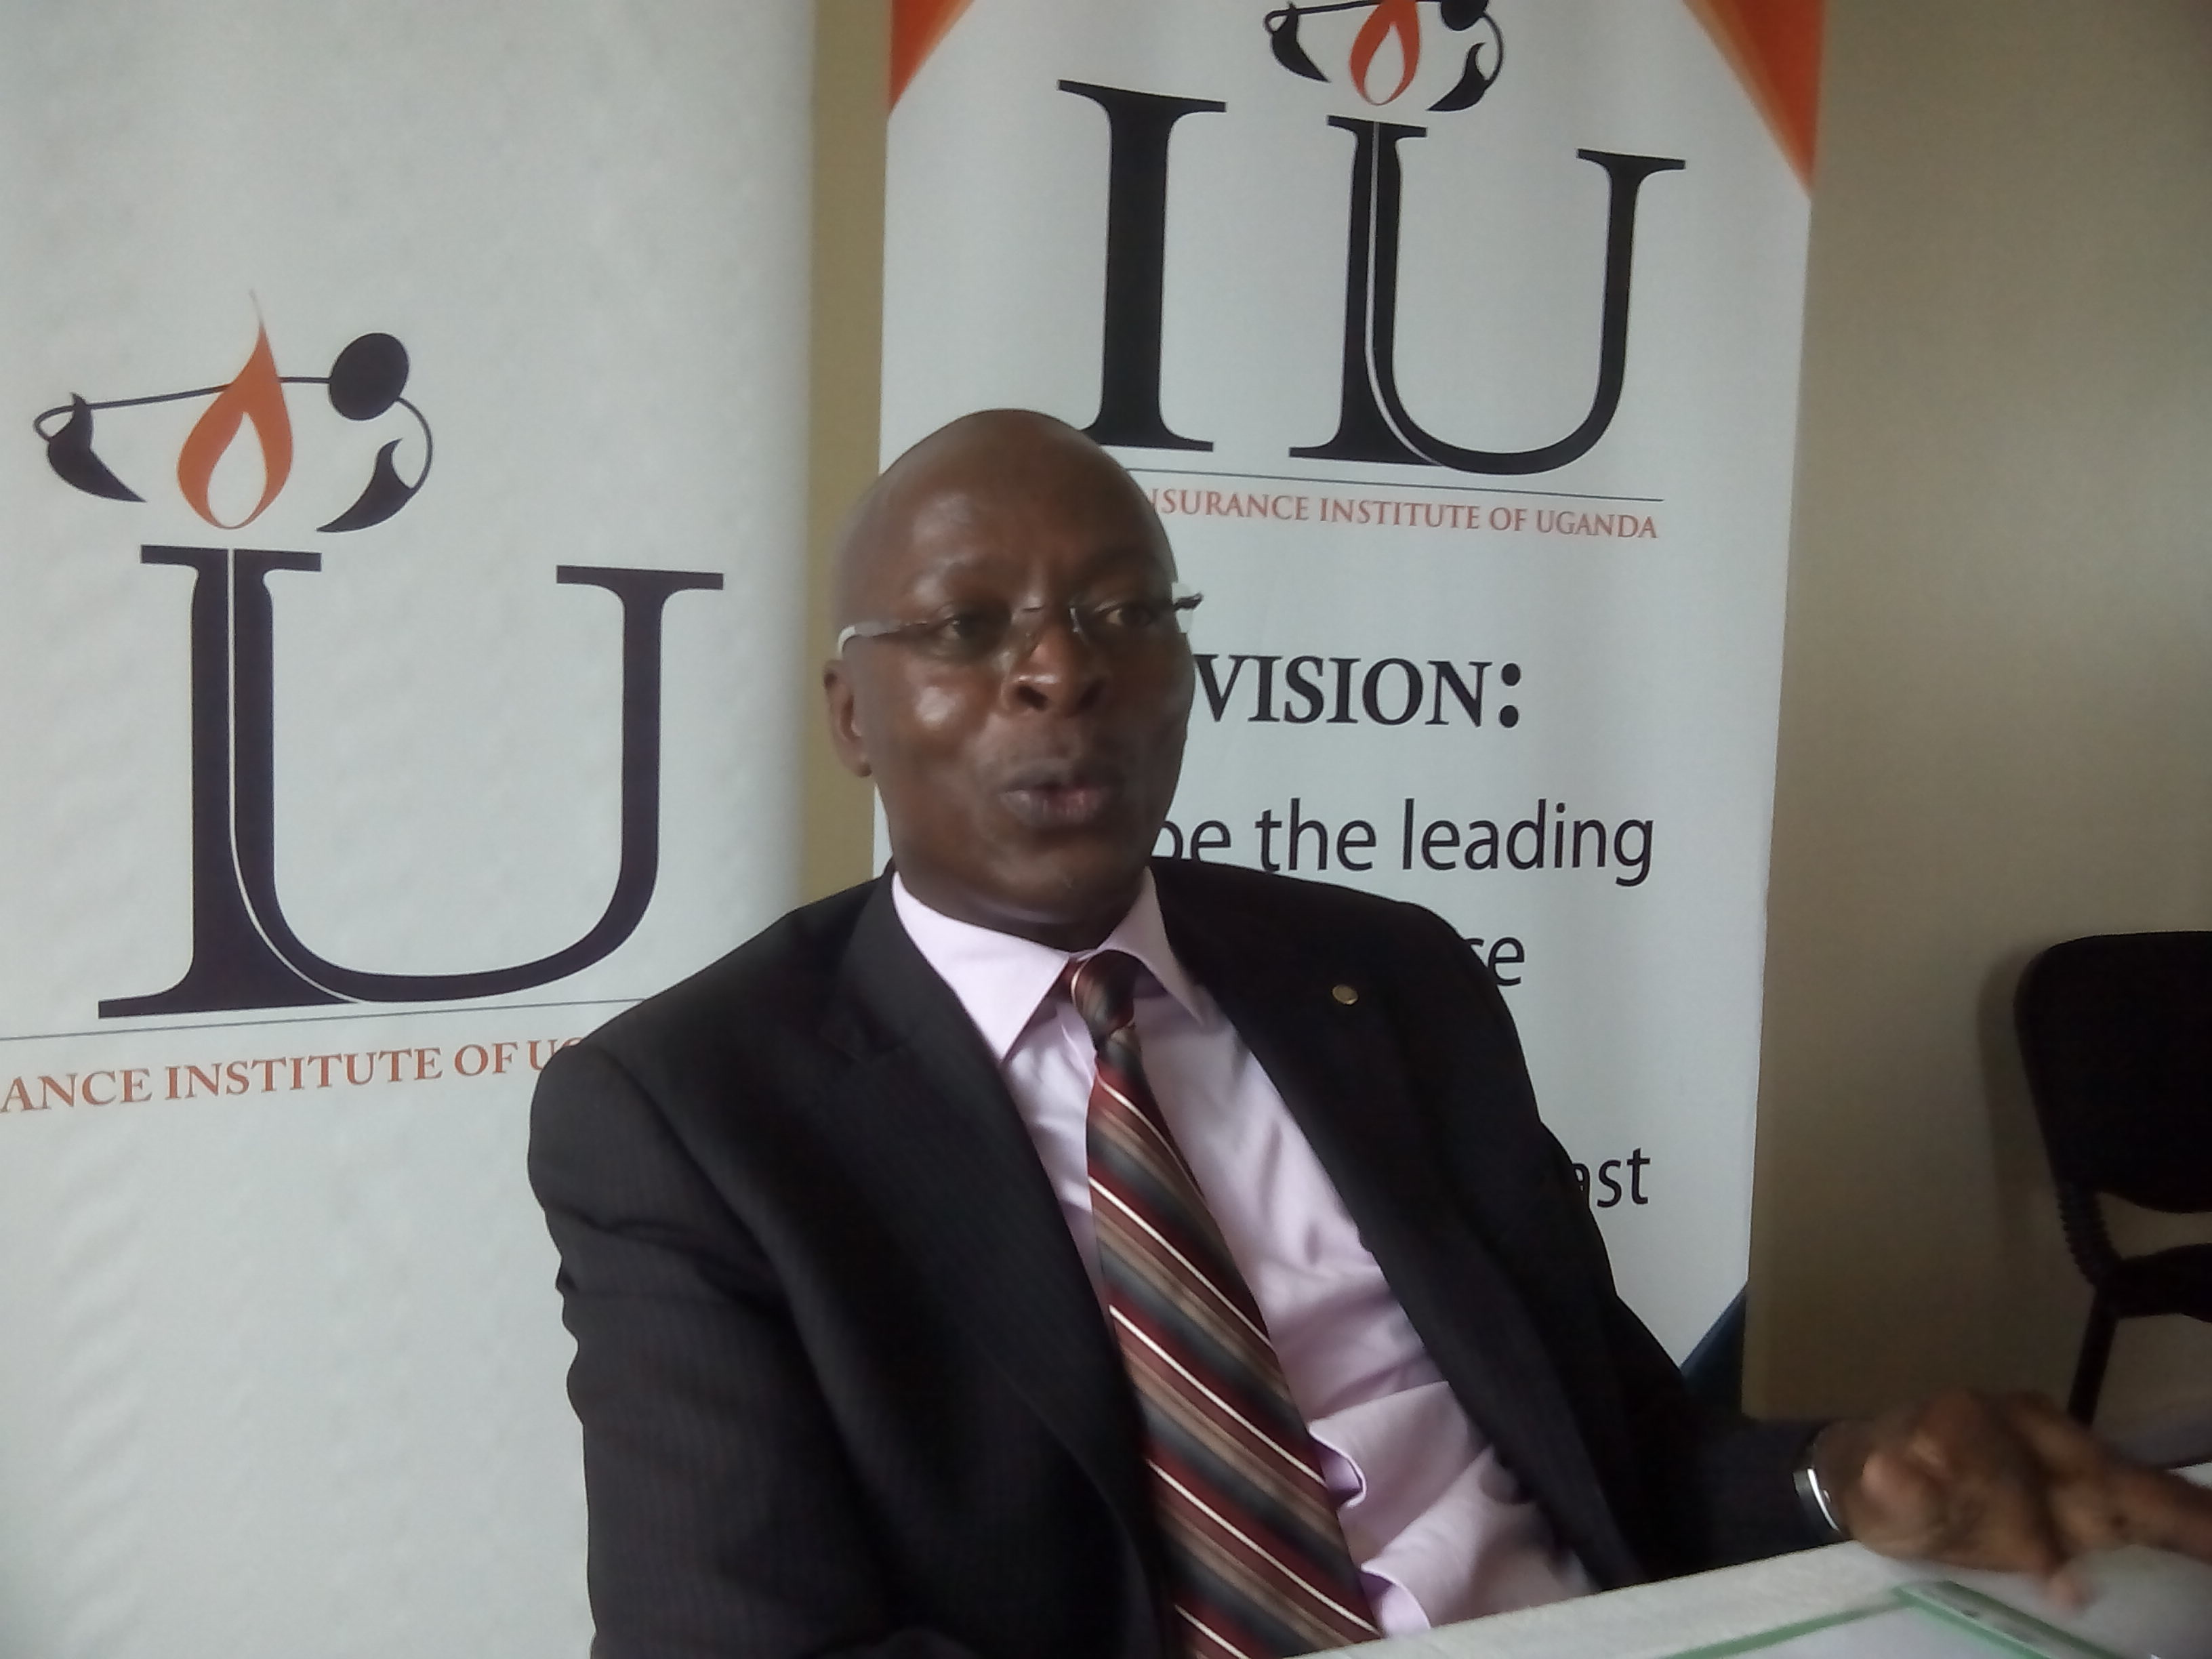 Mr. Elvis Khisa CEO Insurance Institute of Uganda